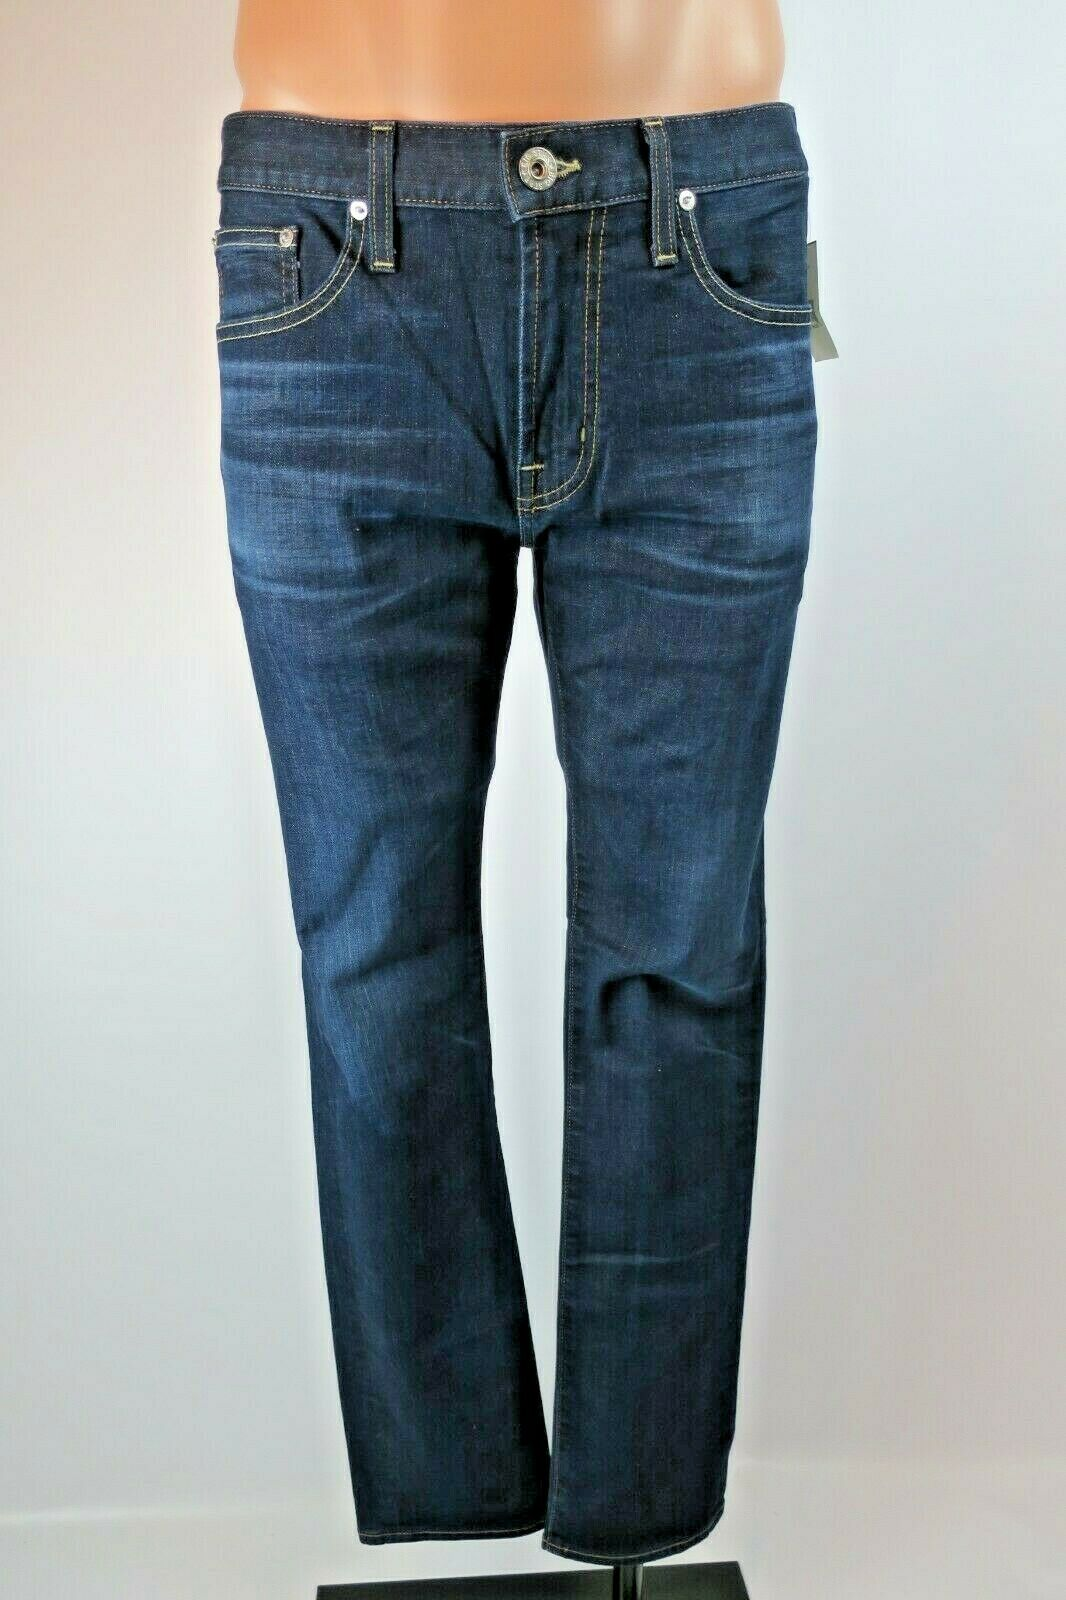 BIG STAR Legend Dark Wash Jeans Stretch Men SAMPLES 34x32 Distressed Denim NWT